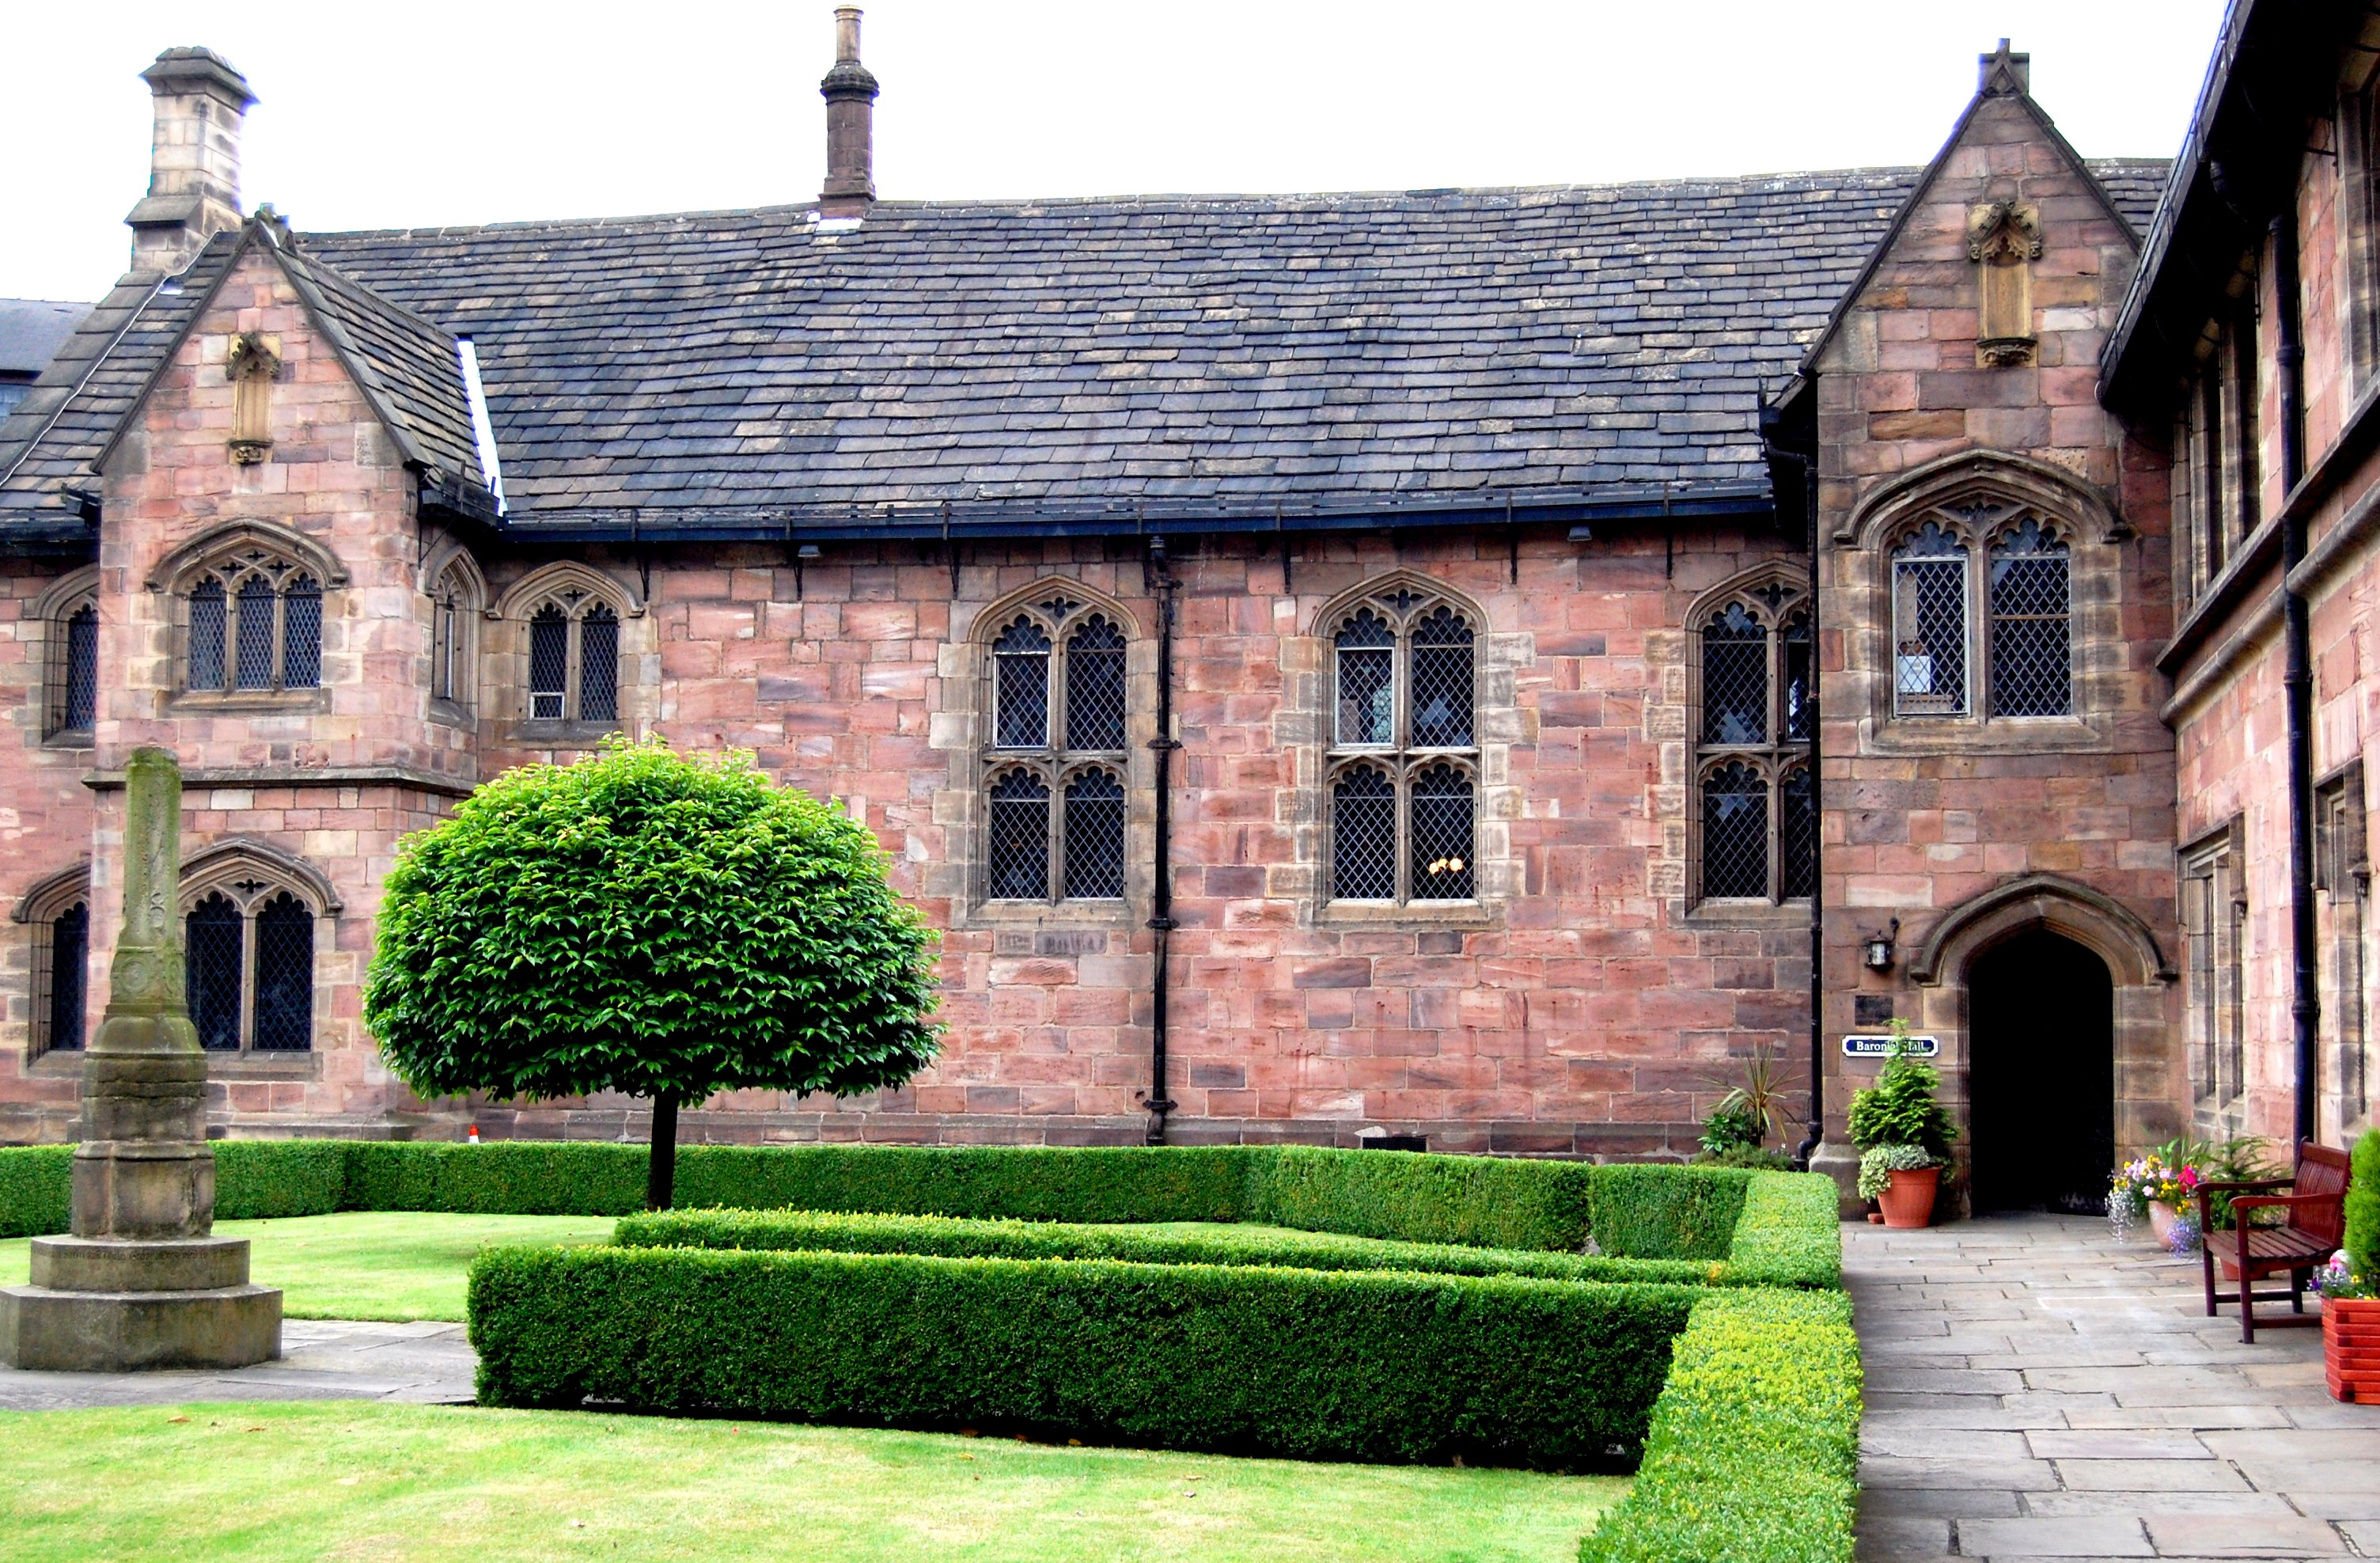 The prize ceremony and gala will take place in the atmospheric medieval Baronial Hall at Chetham's Library; the School of Music.